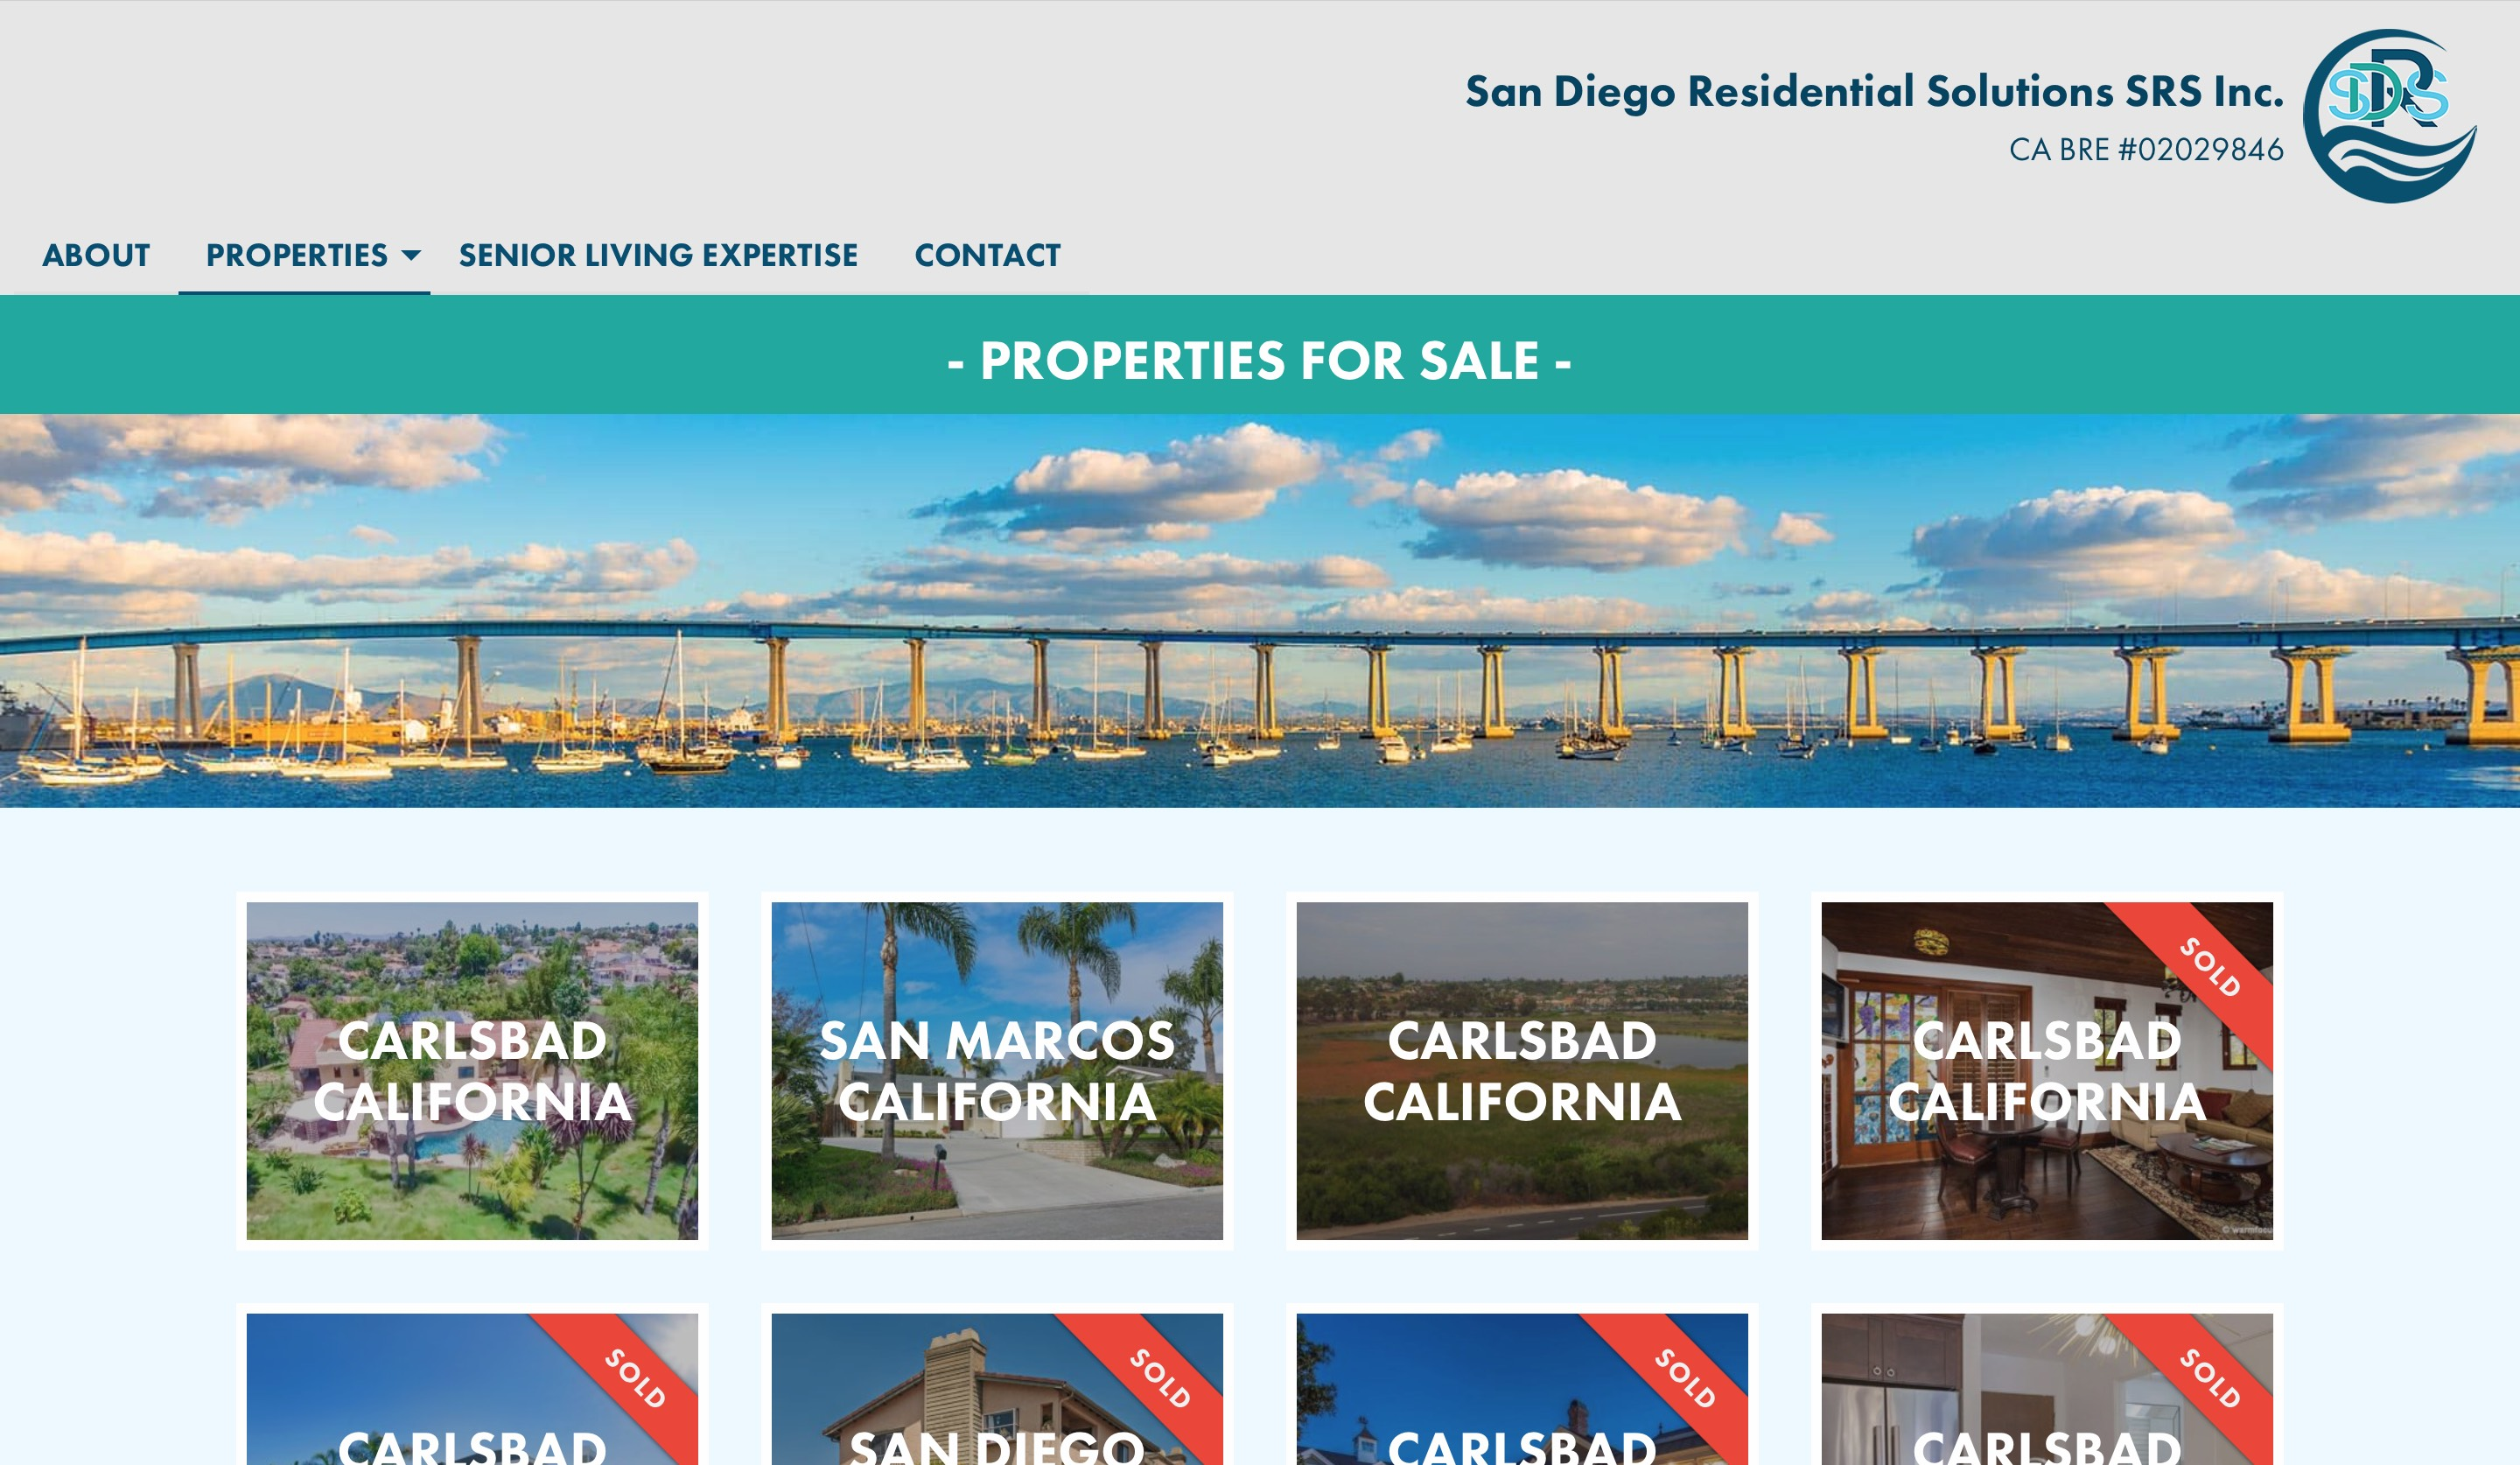 San Diego Residential Solutions property listing page screenshot